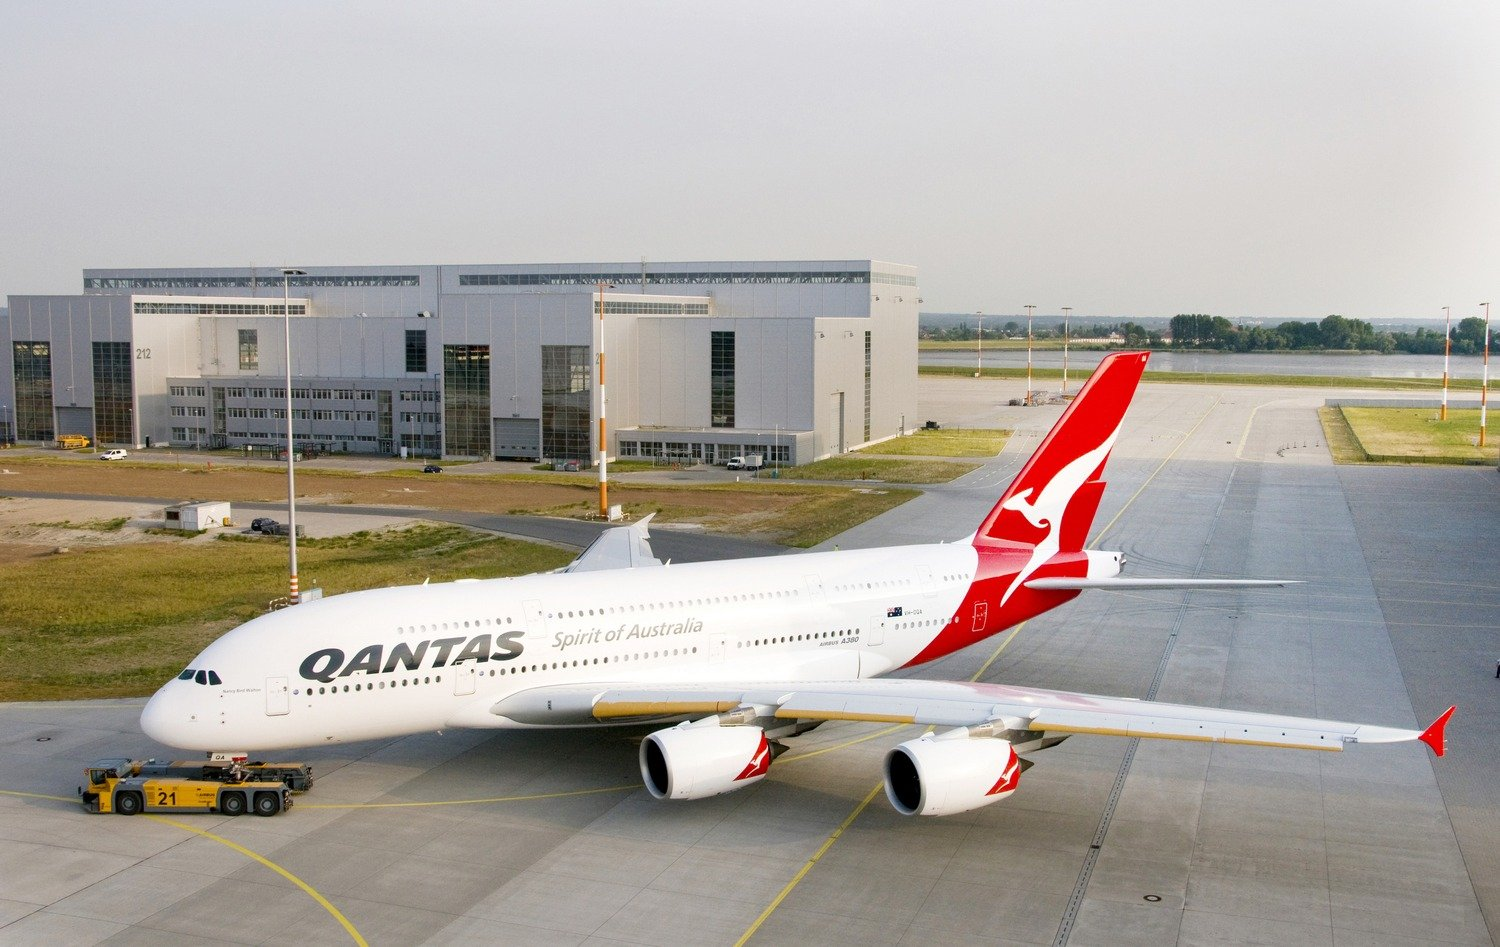 In total, 67 Airbus A380s are in use worldwide, on seven airlines: Qantas, Singapore Airlines, Emirates, Air France, Lufthansa, Korean Airlines and China Southern